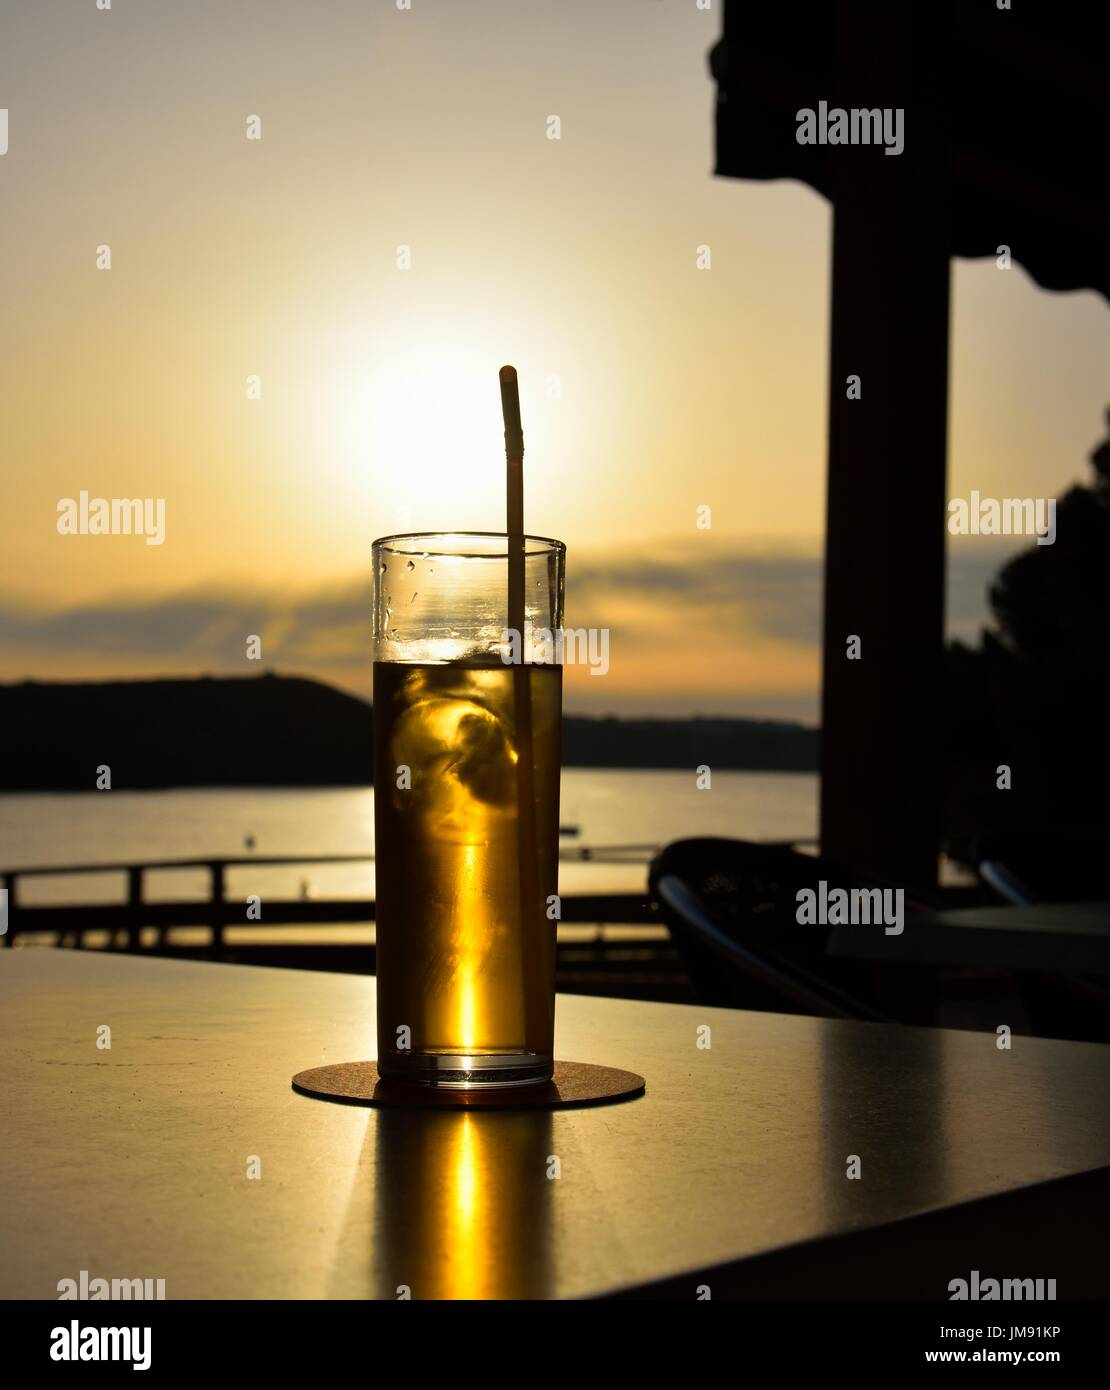 glass of gin and tonic at sunset - Stock Image